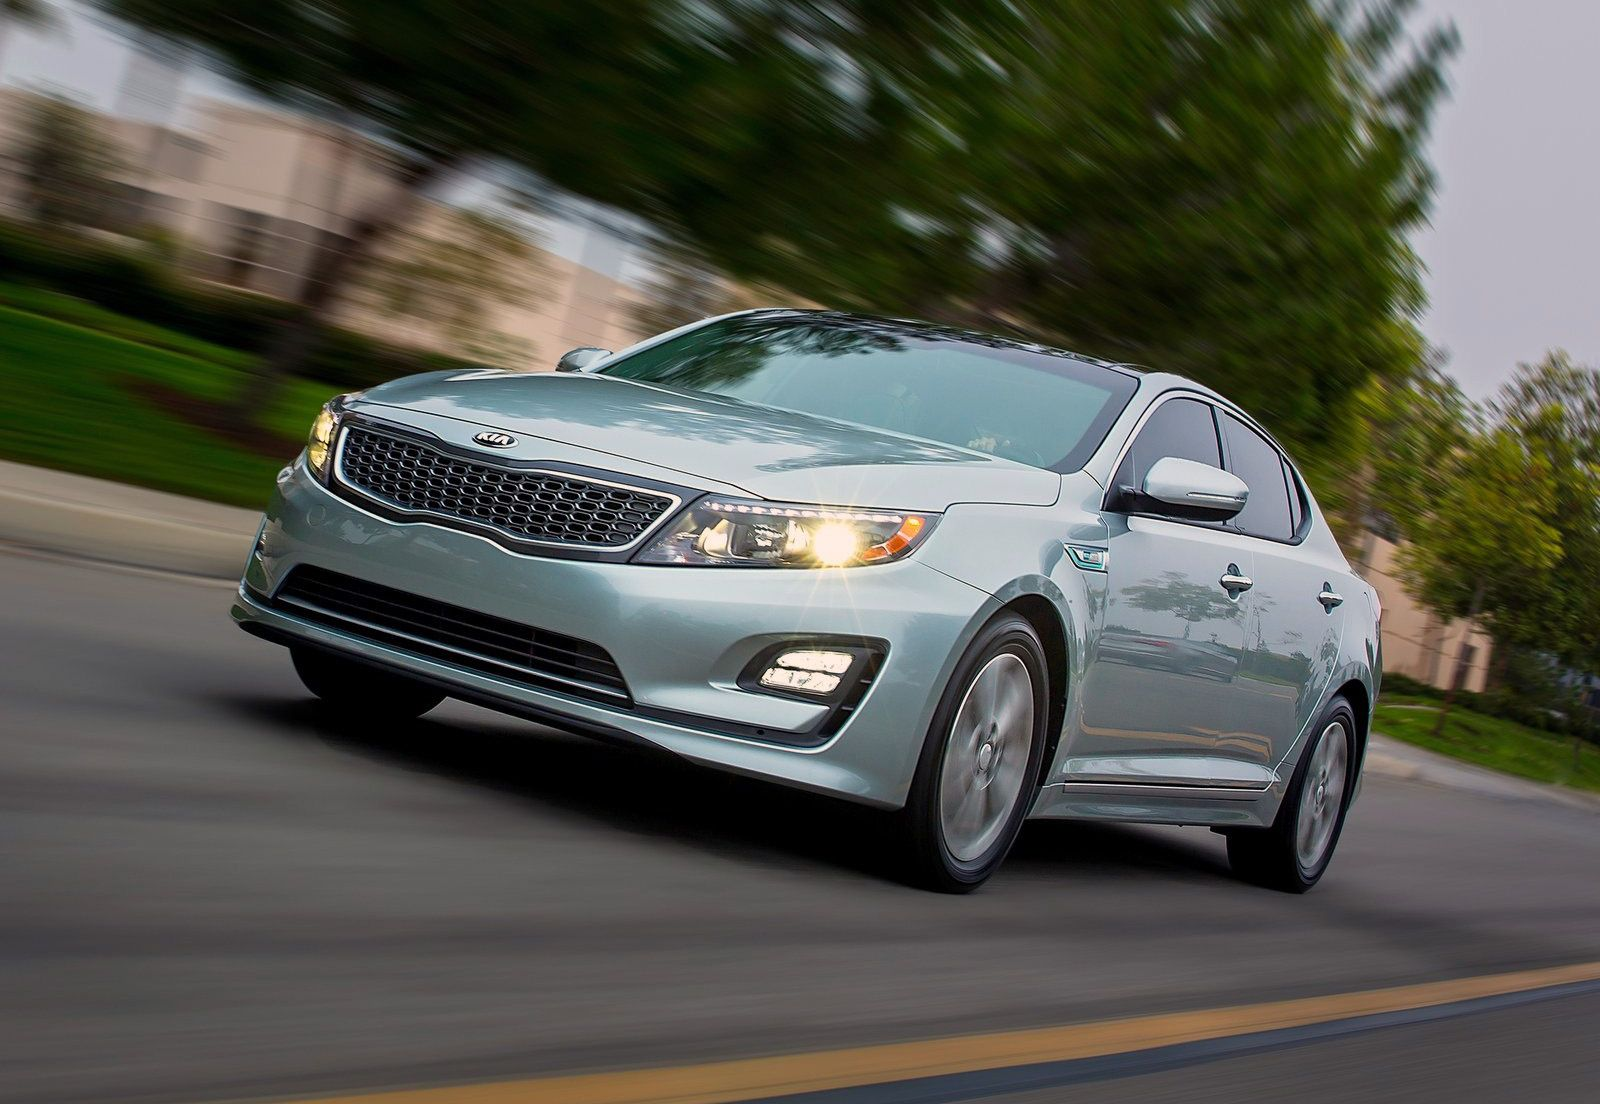 Hugedomains Com Worldcarwallpapers Com Is For Sale World Car Wallpapers Kia Optima Fuel Efficient Cars Kia